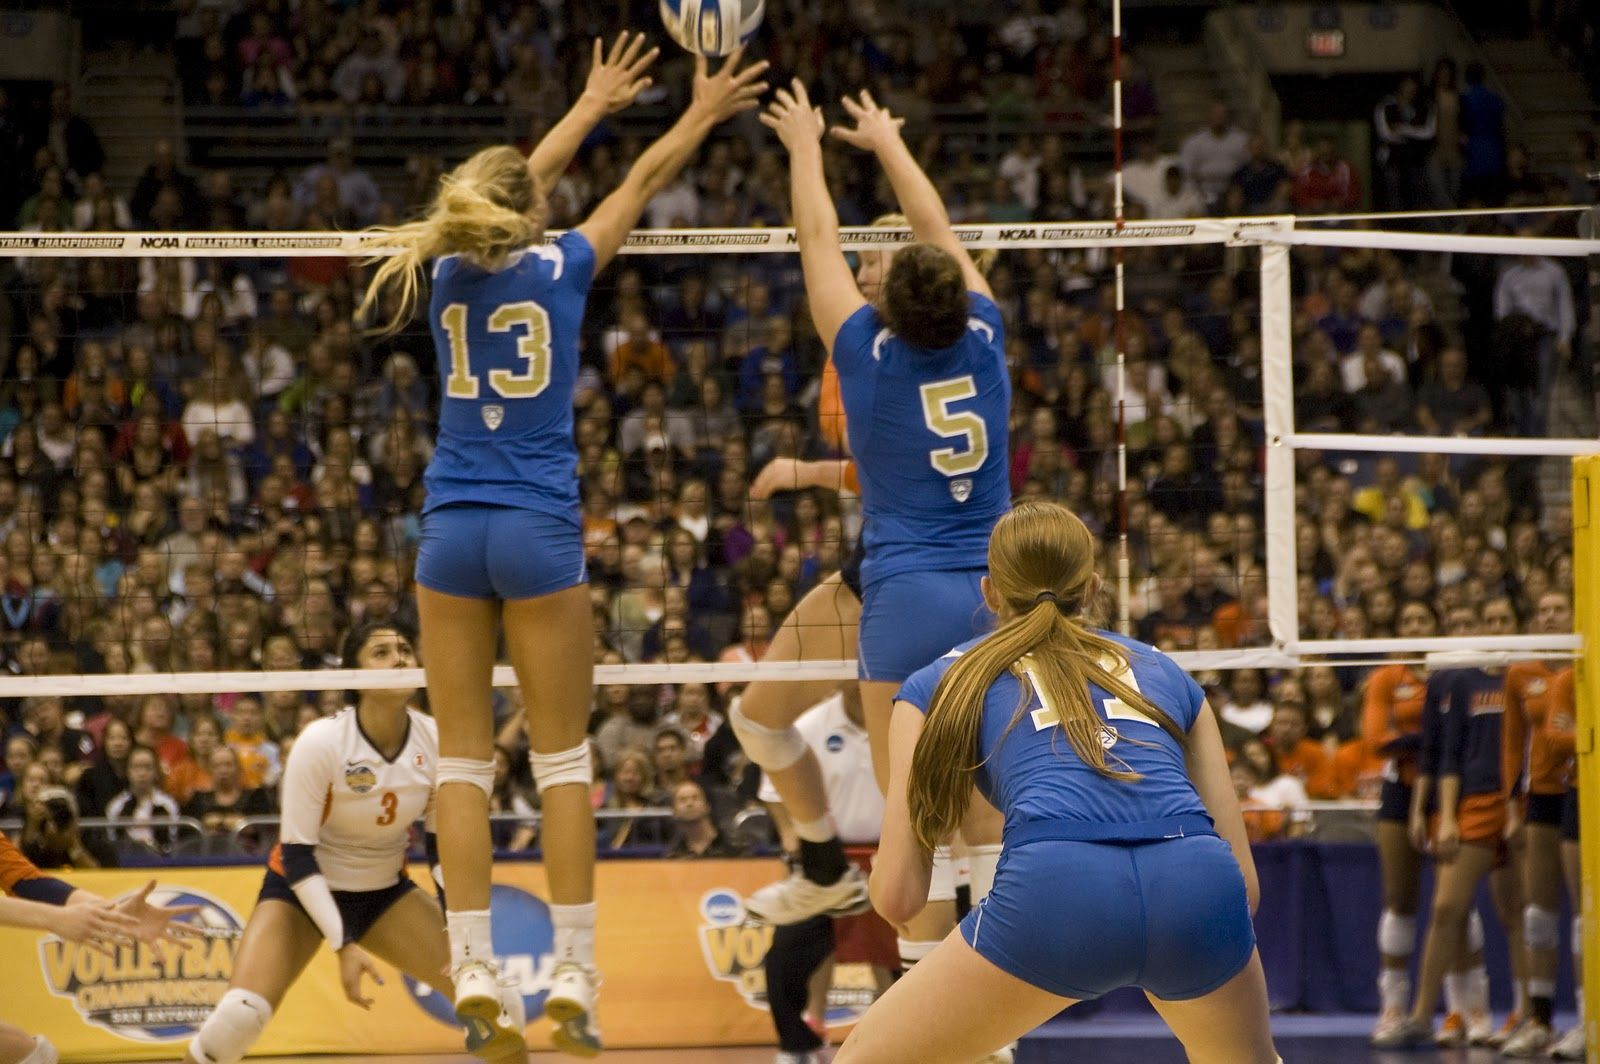 Pin On All Things Volleyball